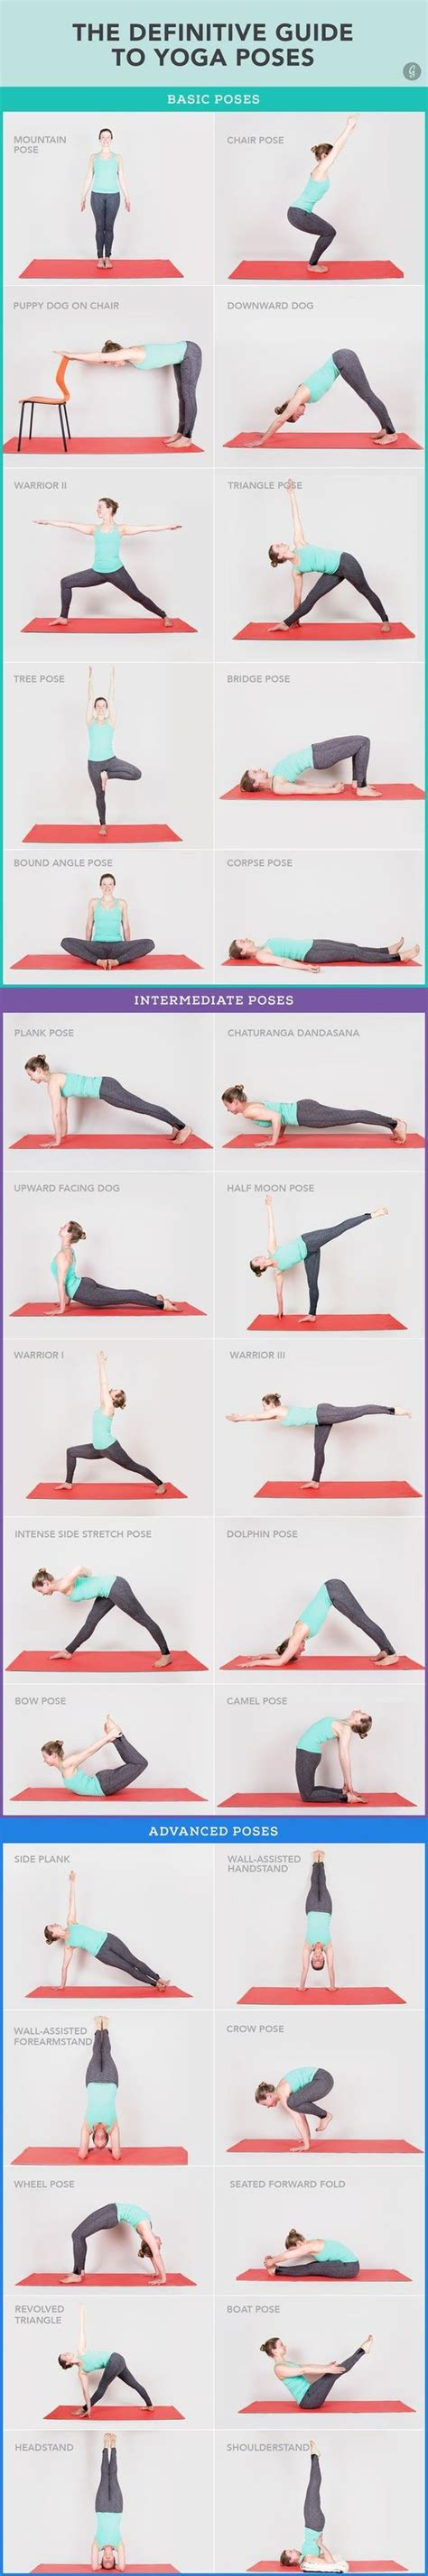 yoga tutorial for beginners 30 yoga poses you really need to know fitness how to